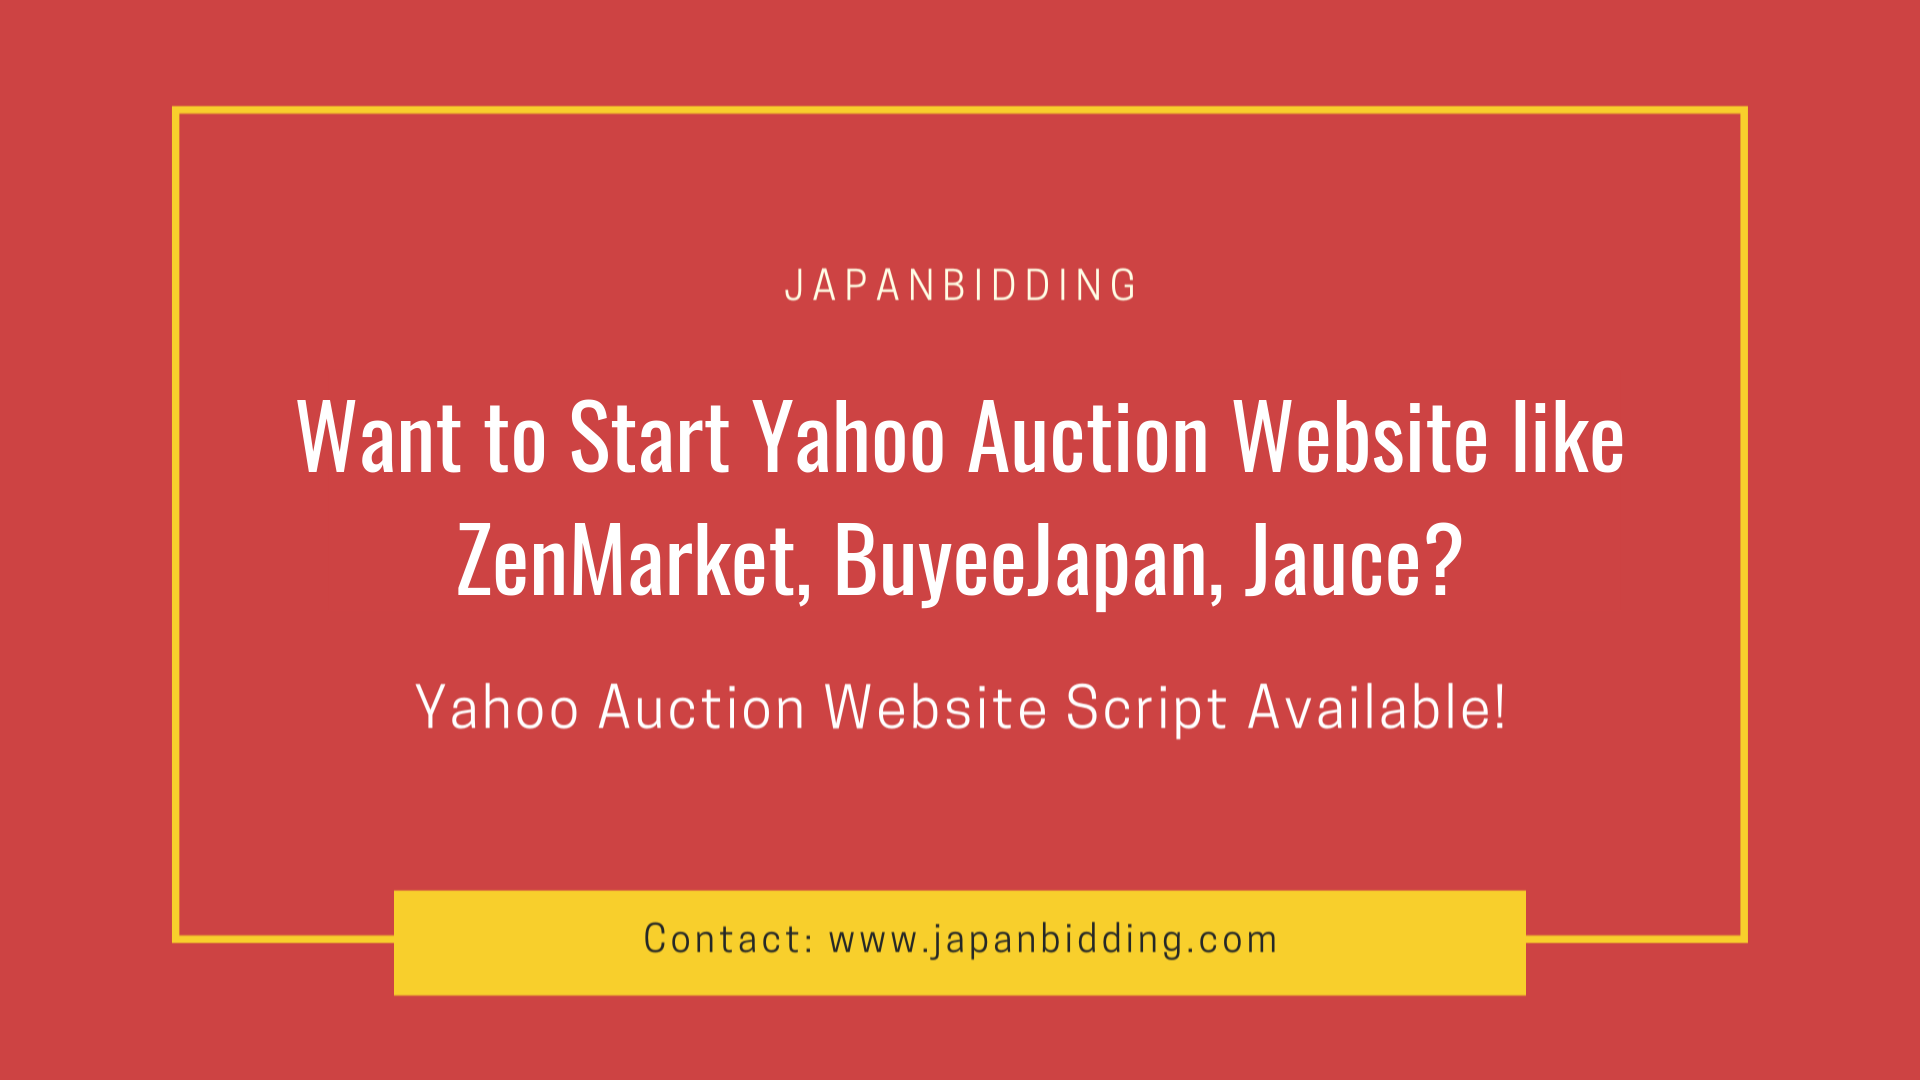 How to Start Yahoo Auction Website like ZenMarket, BuyeeJapan, Jauce